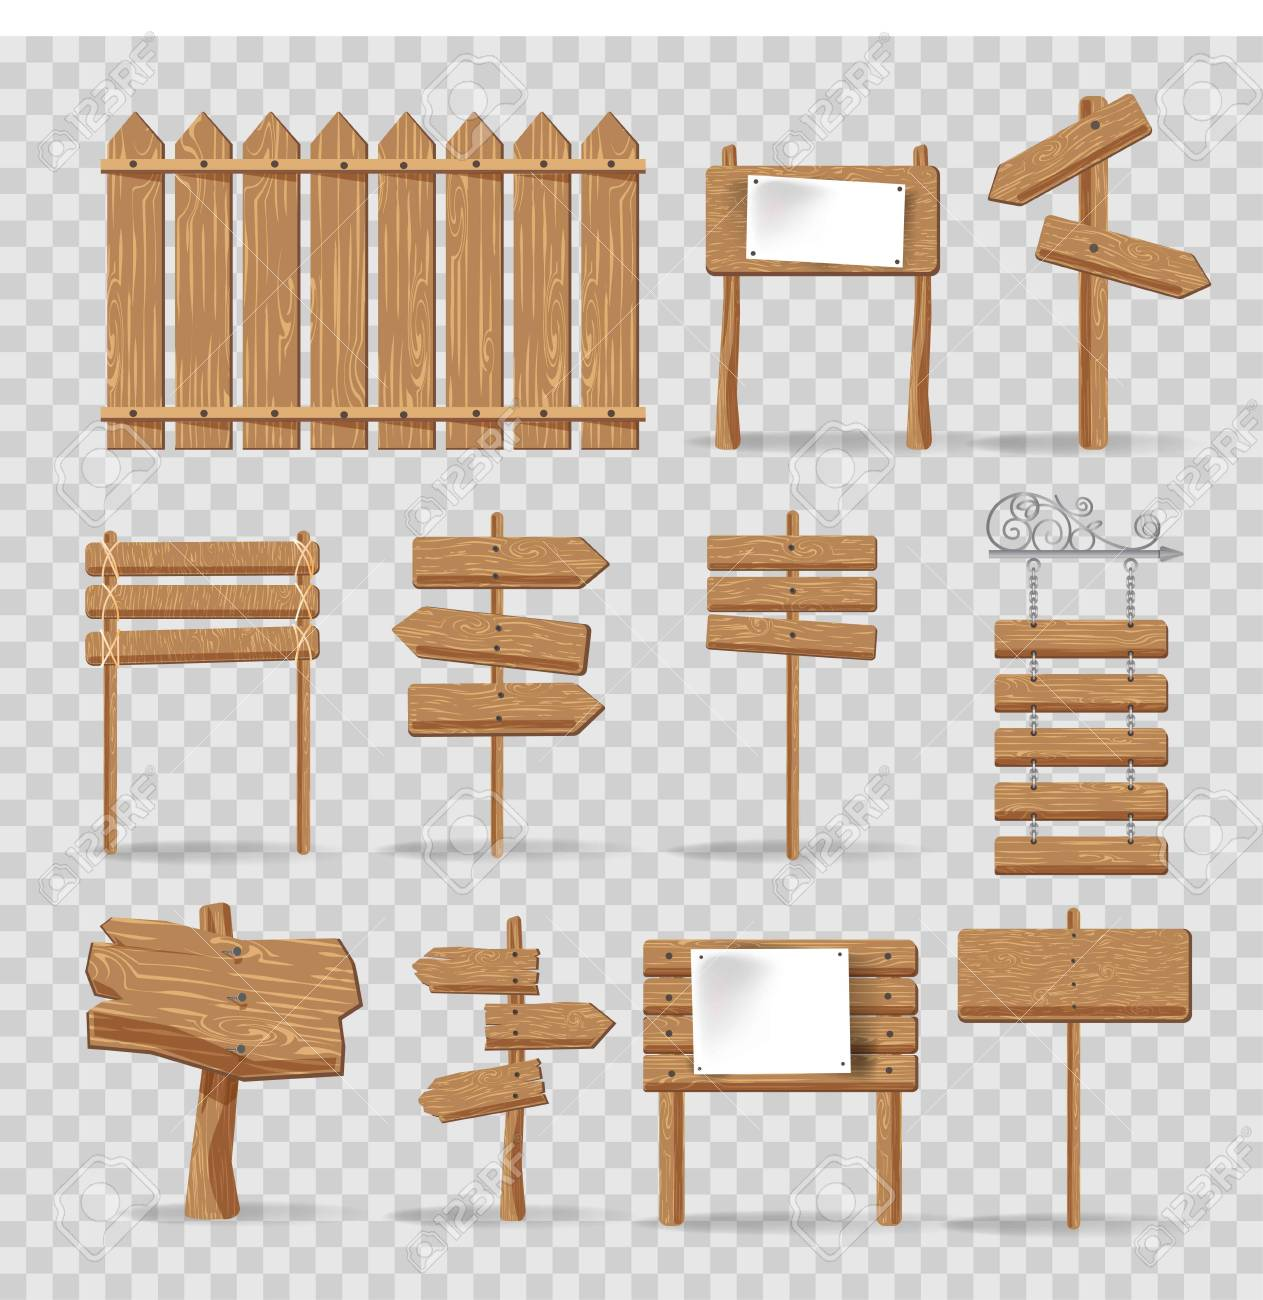 Wooden Signs And Advertising Wood Board Signage Templates Hanging